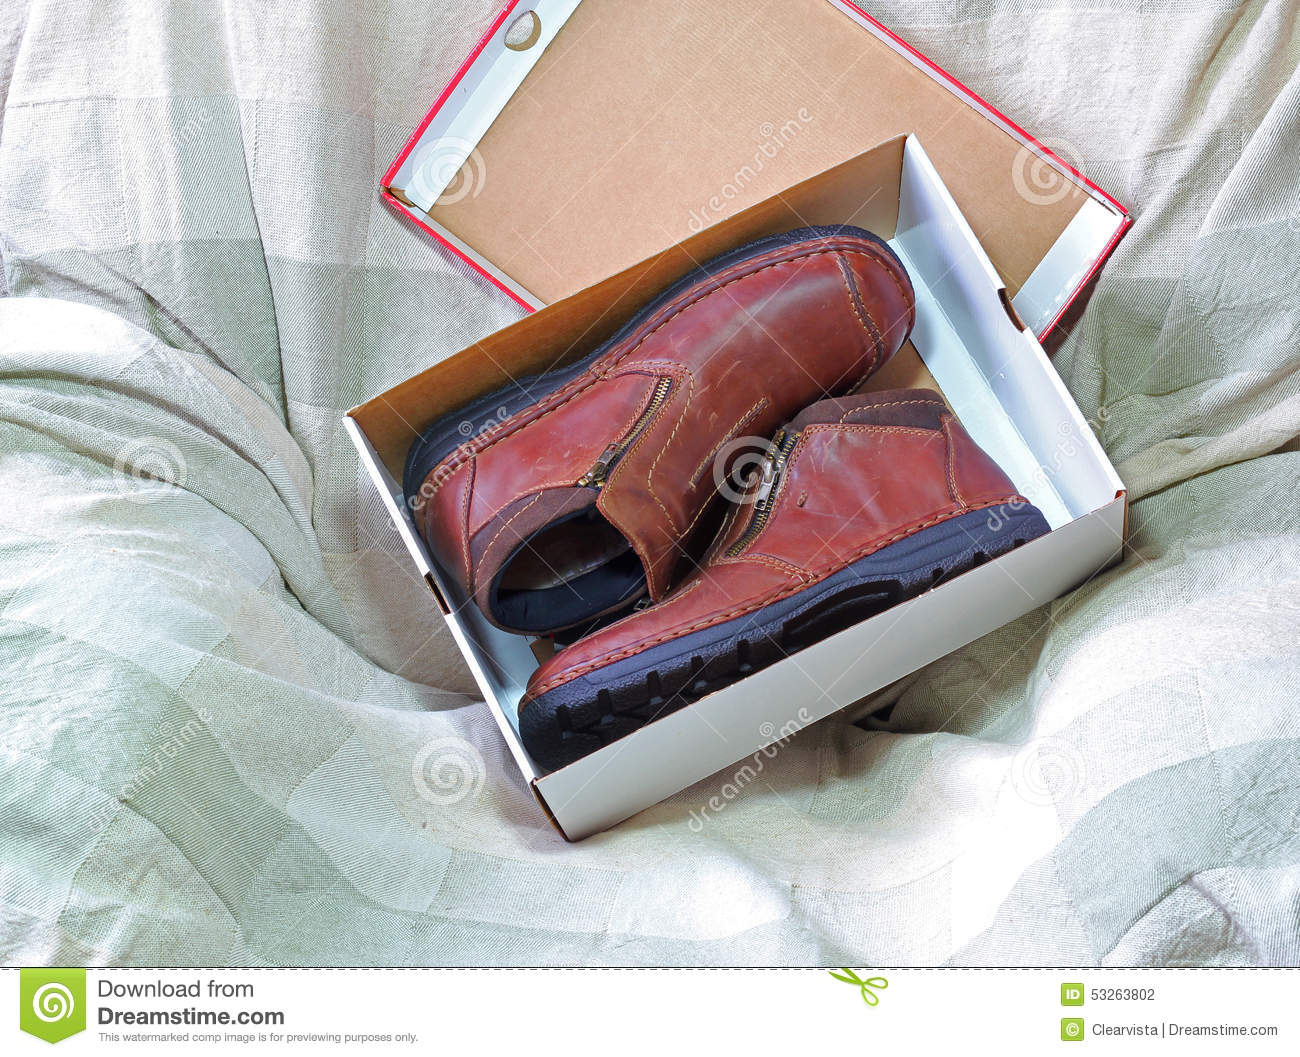 a0bb99f5a378 New shoes in a box. stock photo. Image of packaging